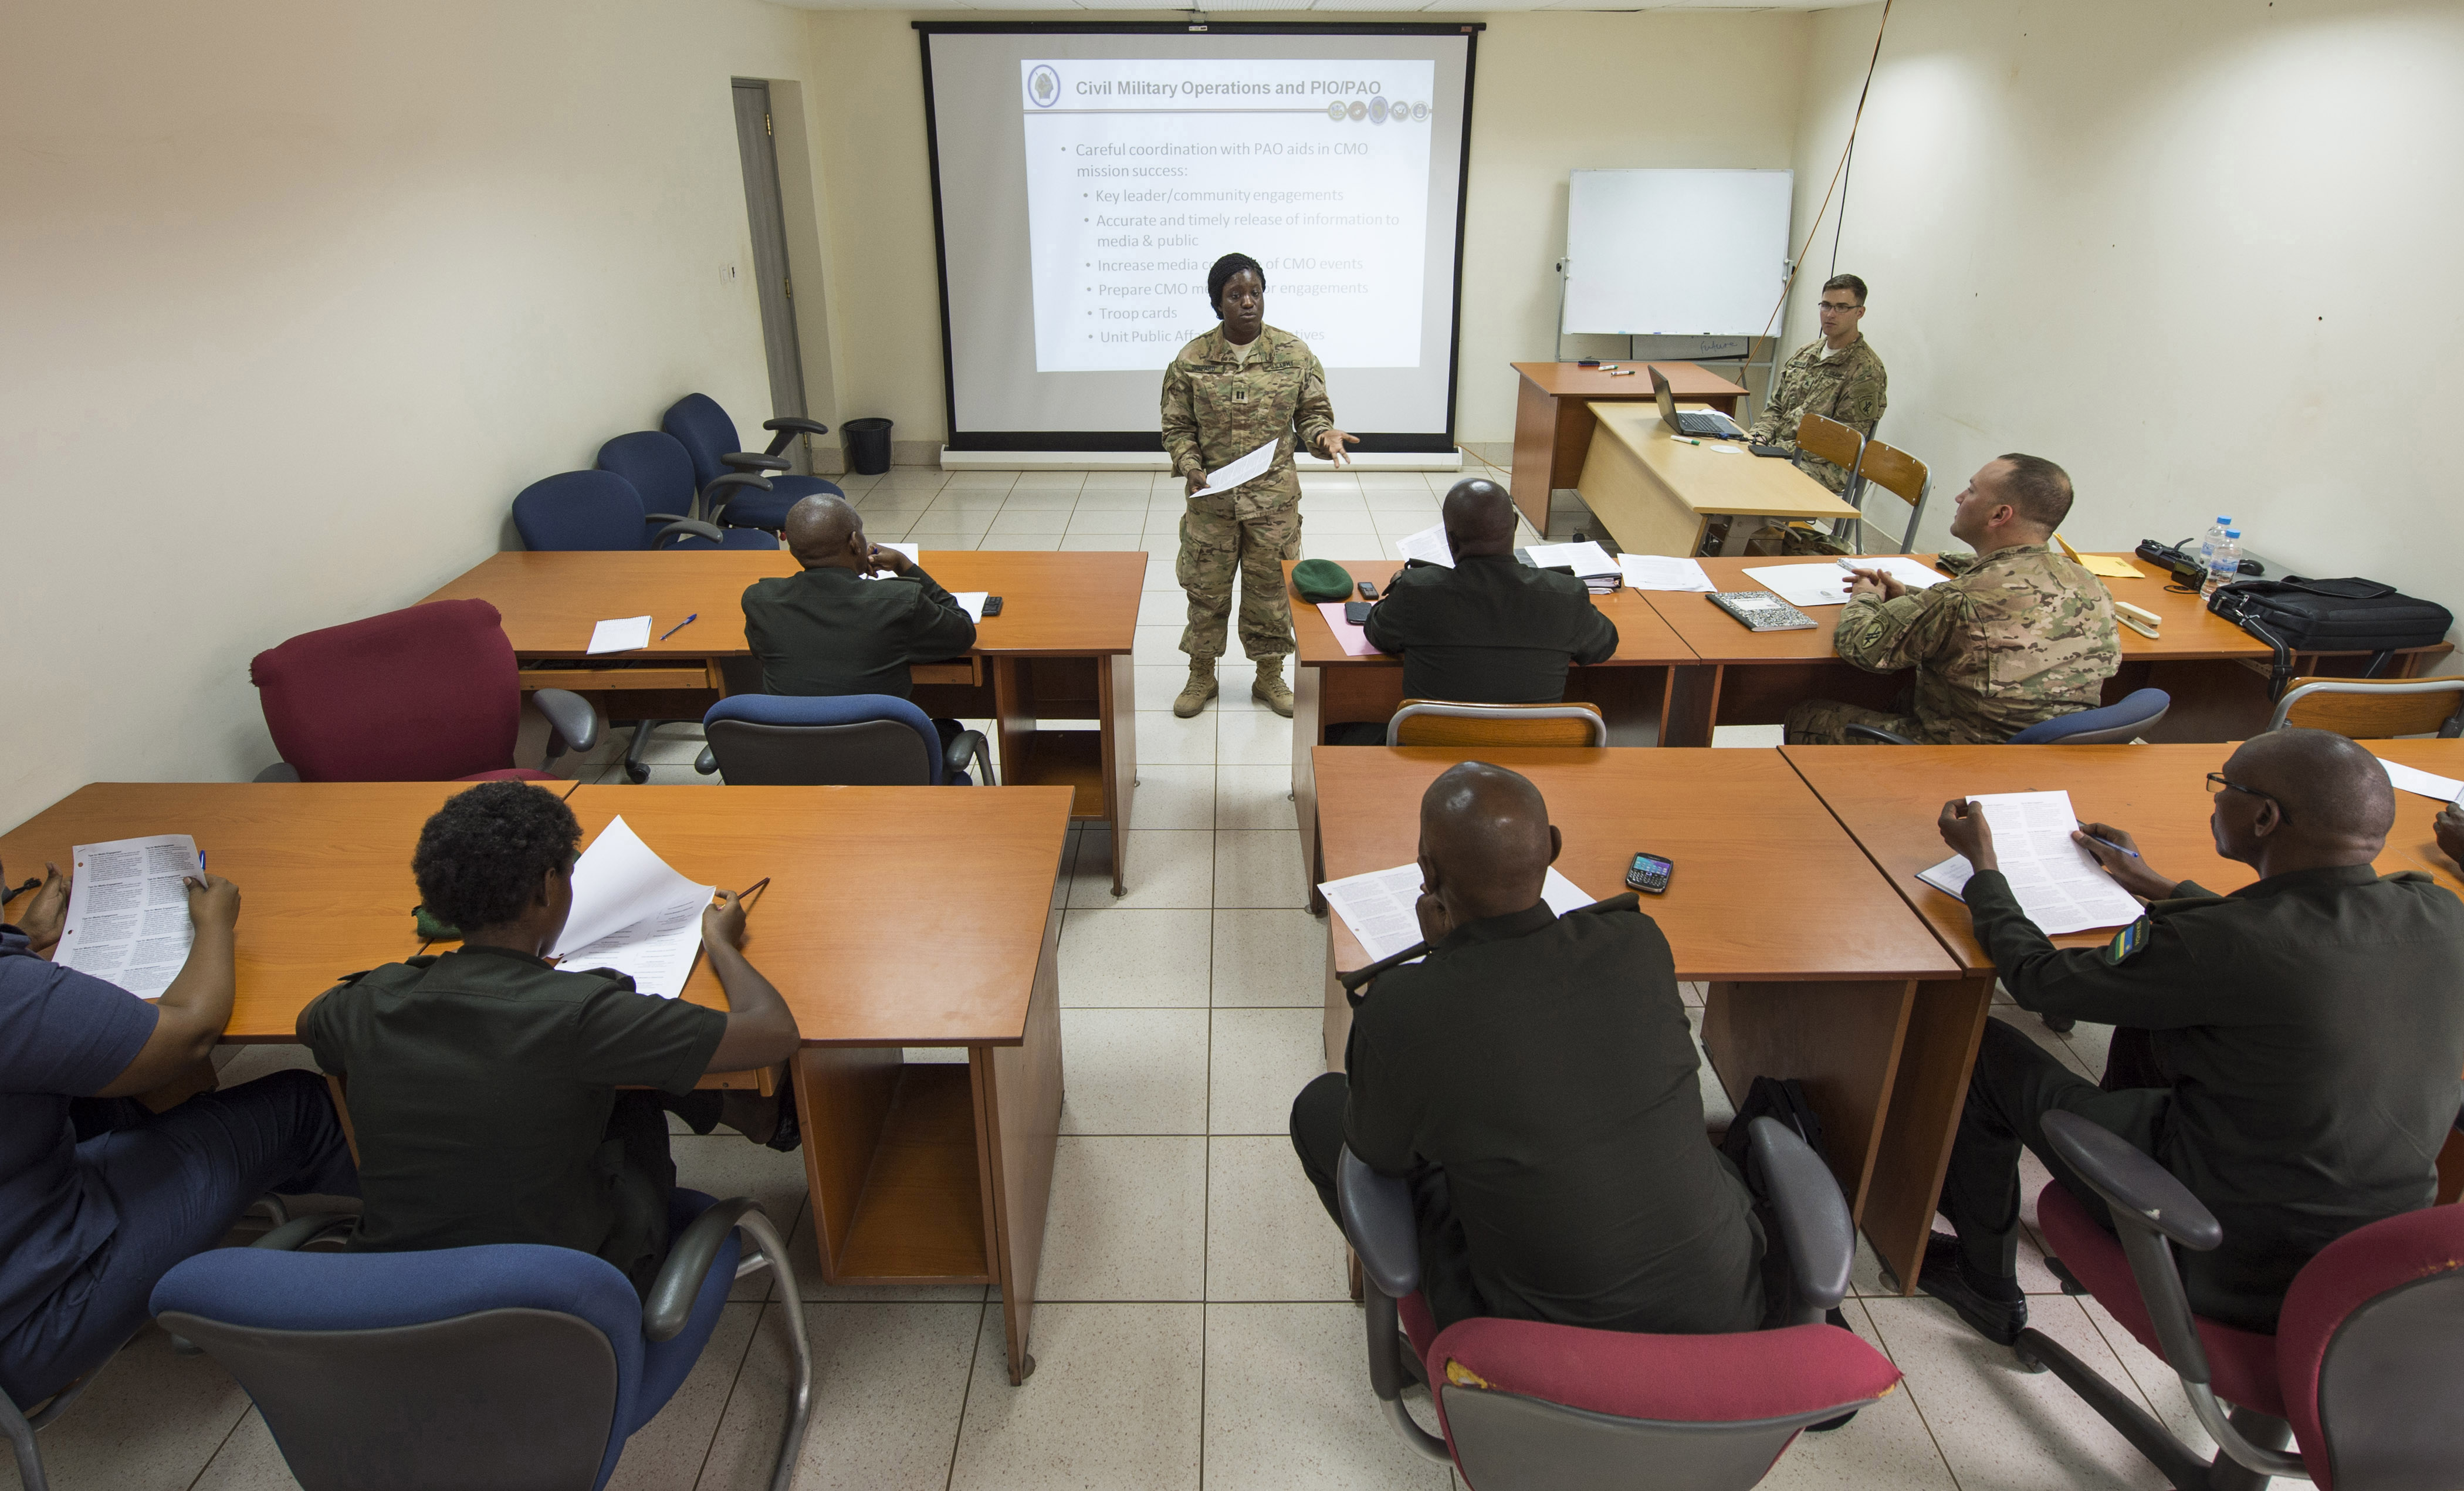 U.S. Army Capt. Morgan Shepard, Combined Joint Task Force-Horn of Africa Public Information officer, discusses civil military operations and the roles of Public Affairs and Public Information Officers Feb. 2, 2016, at RDF headquarters, Kigali, Rwanda. During the engagement, U.S. Army civil affairs and Rwanda Defense Force Civil Military Co-operation (CIMIC) discussed similarities and differences between the organizations. The RDF will use the knowledge gained during the event to address training and organizational needs for their forces. (U.S. Air Force photo by Senior Airman Peter Thompson)